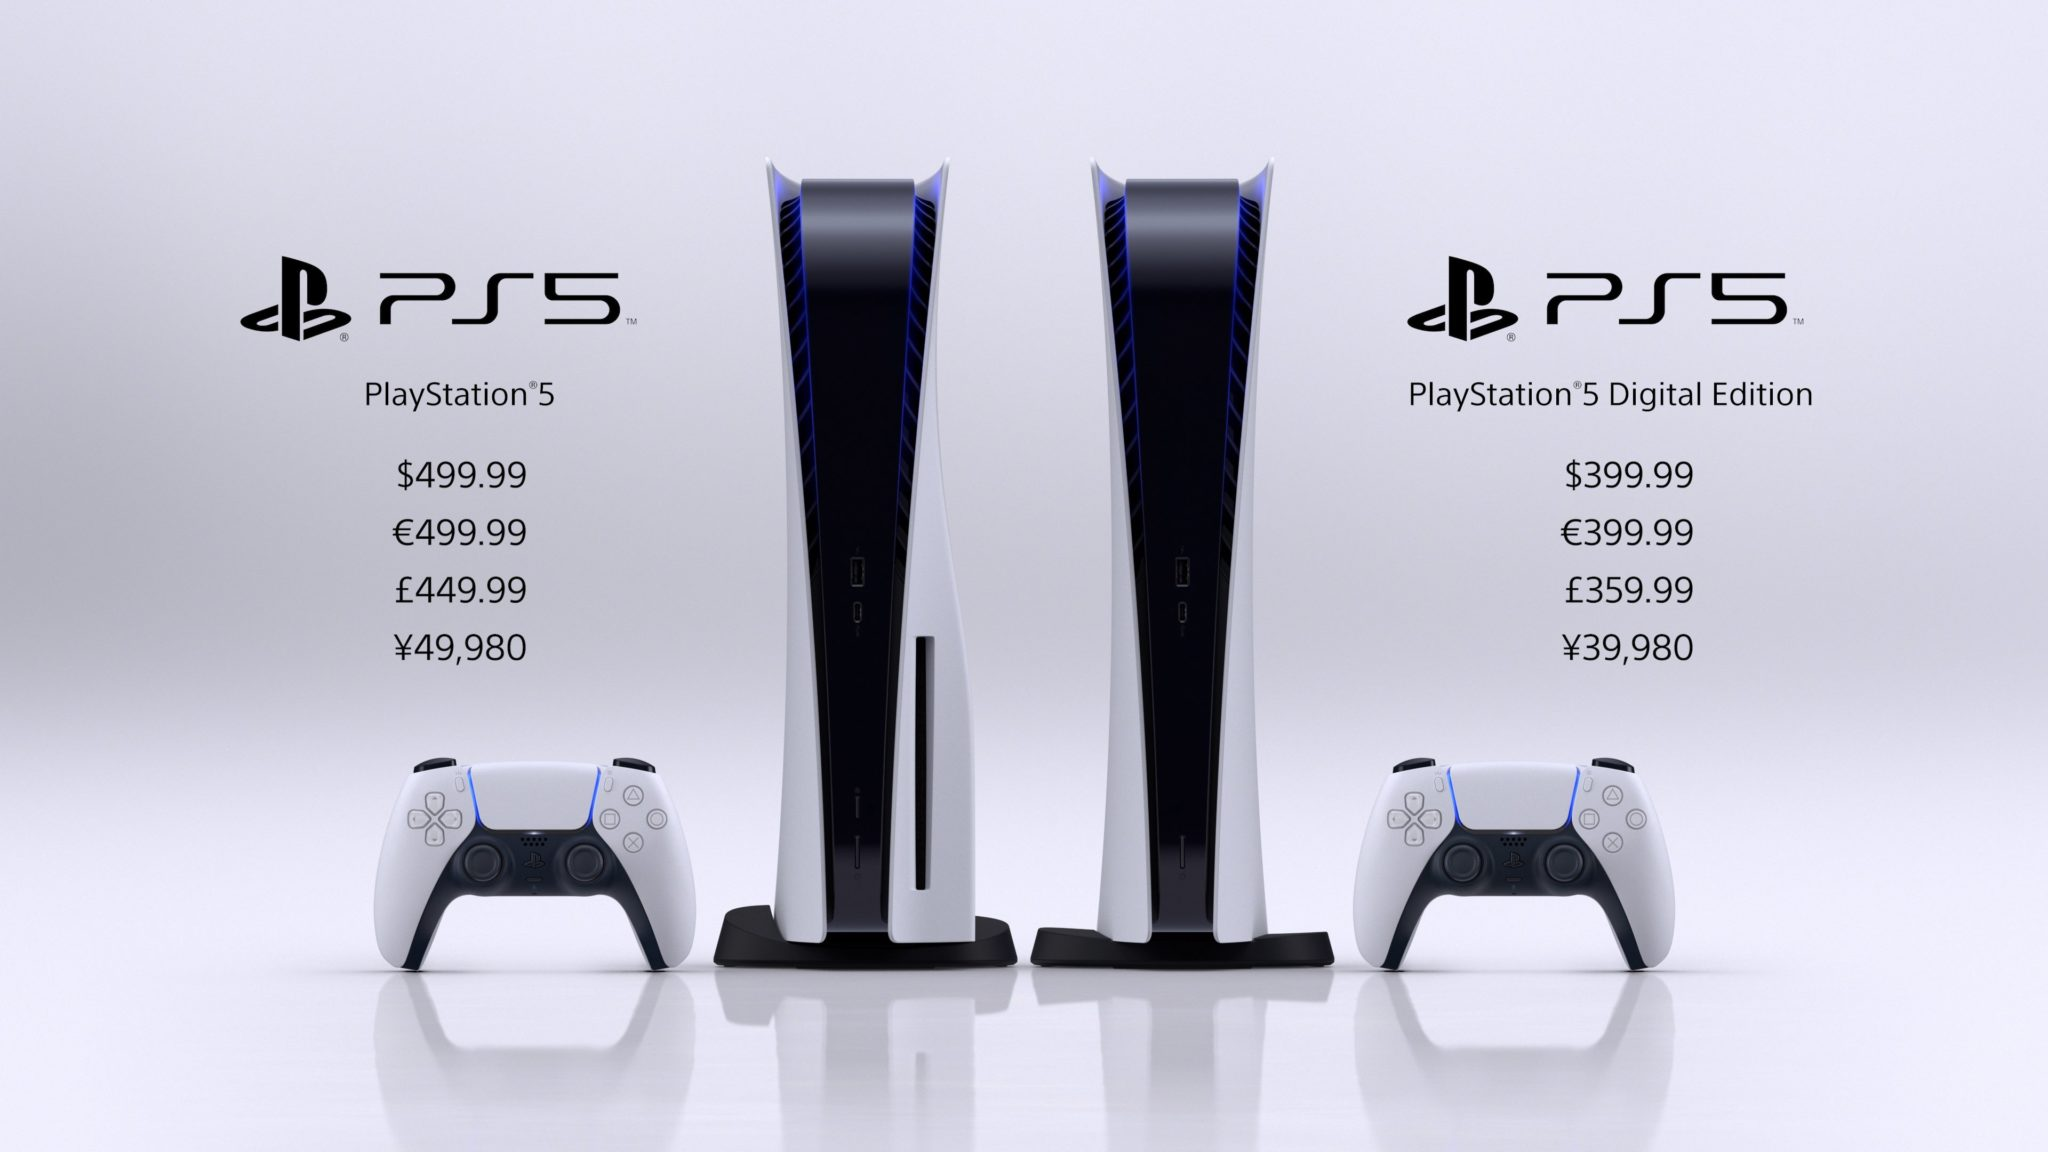 Cost of PlayStation 5 worldwide